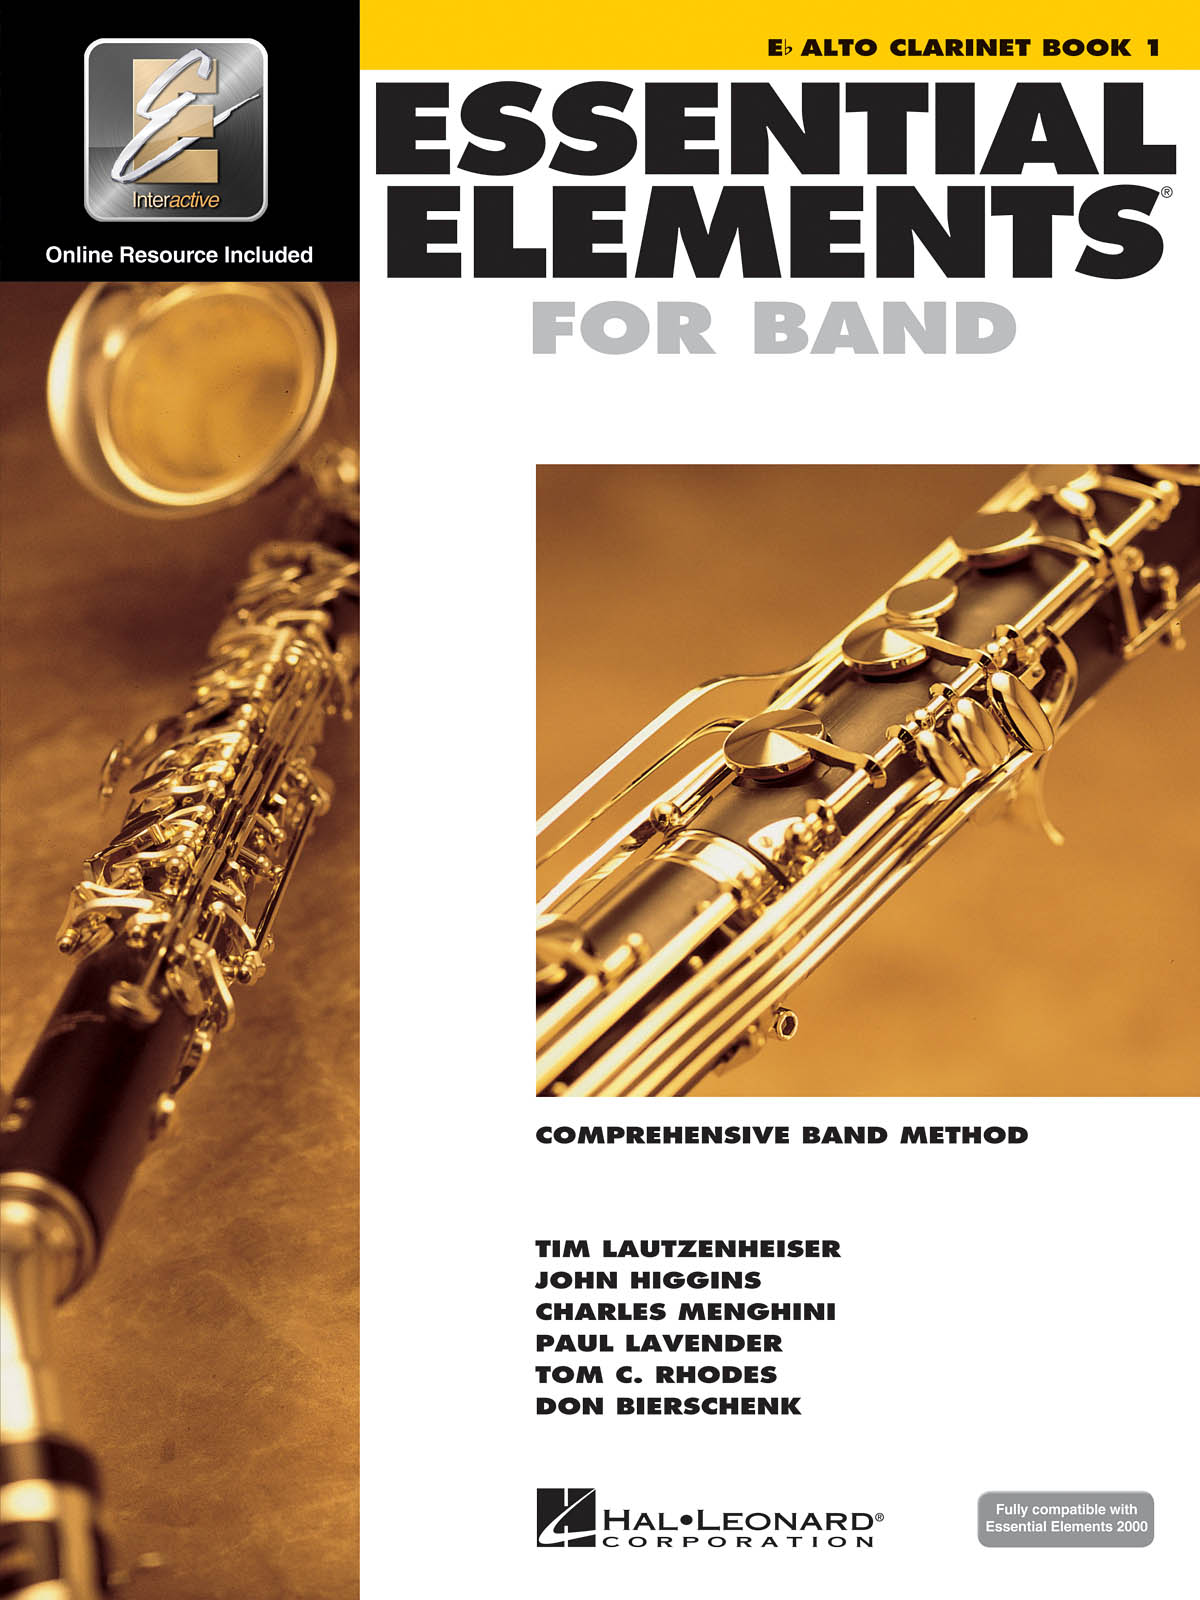 Essential Elements for Band - Book 1 - Alto Clar.: Concert Band: Score